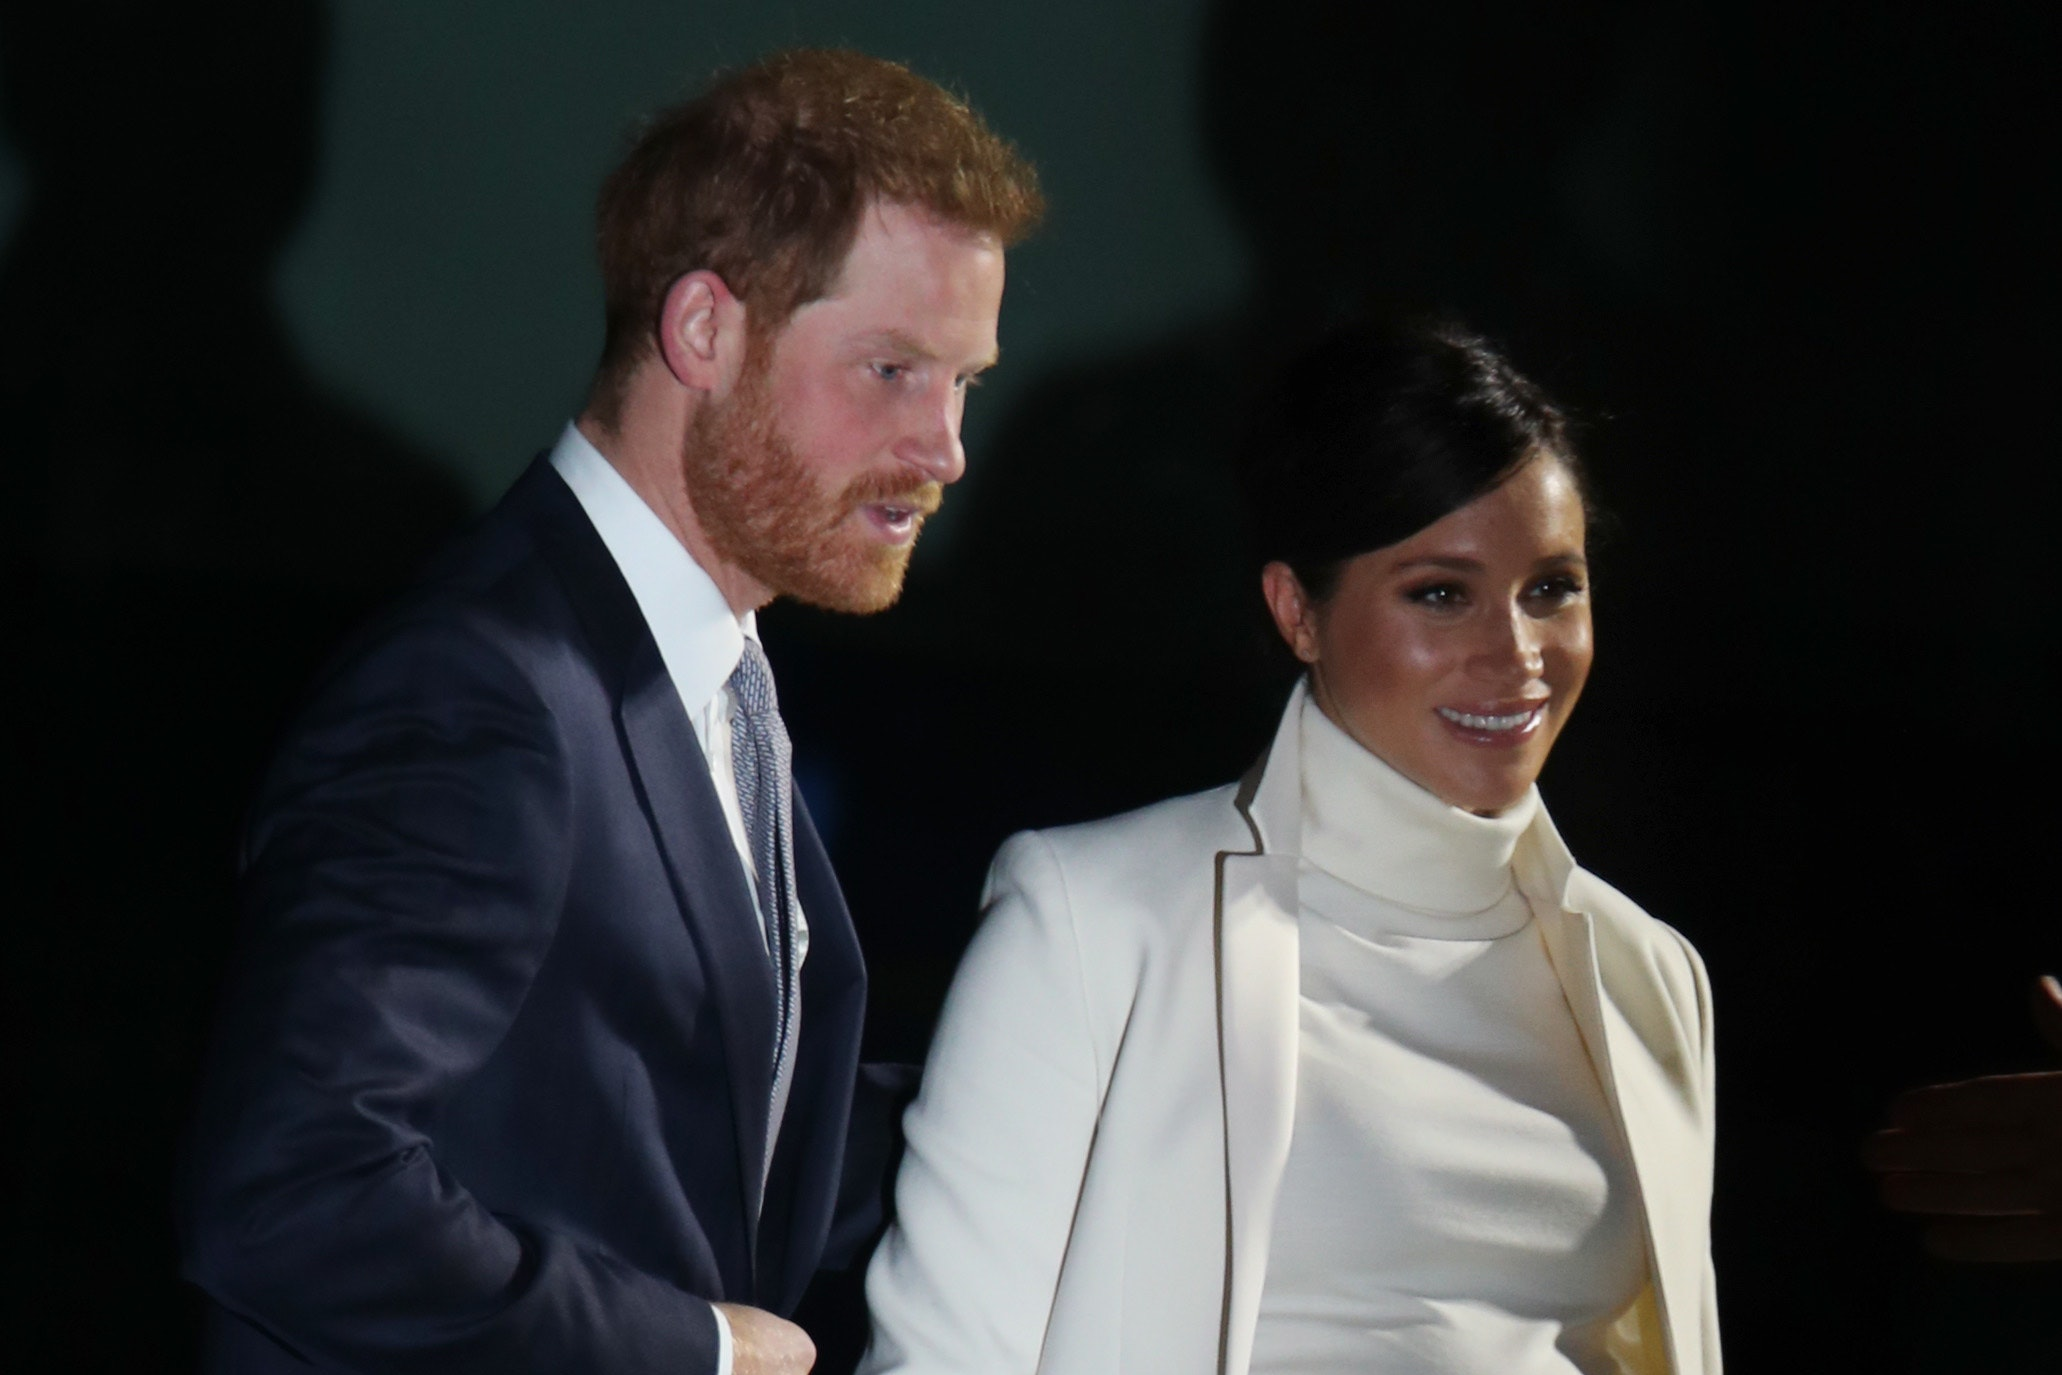 The Duke and Duchess of Sussex arrive at the Natural History Museum